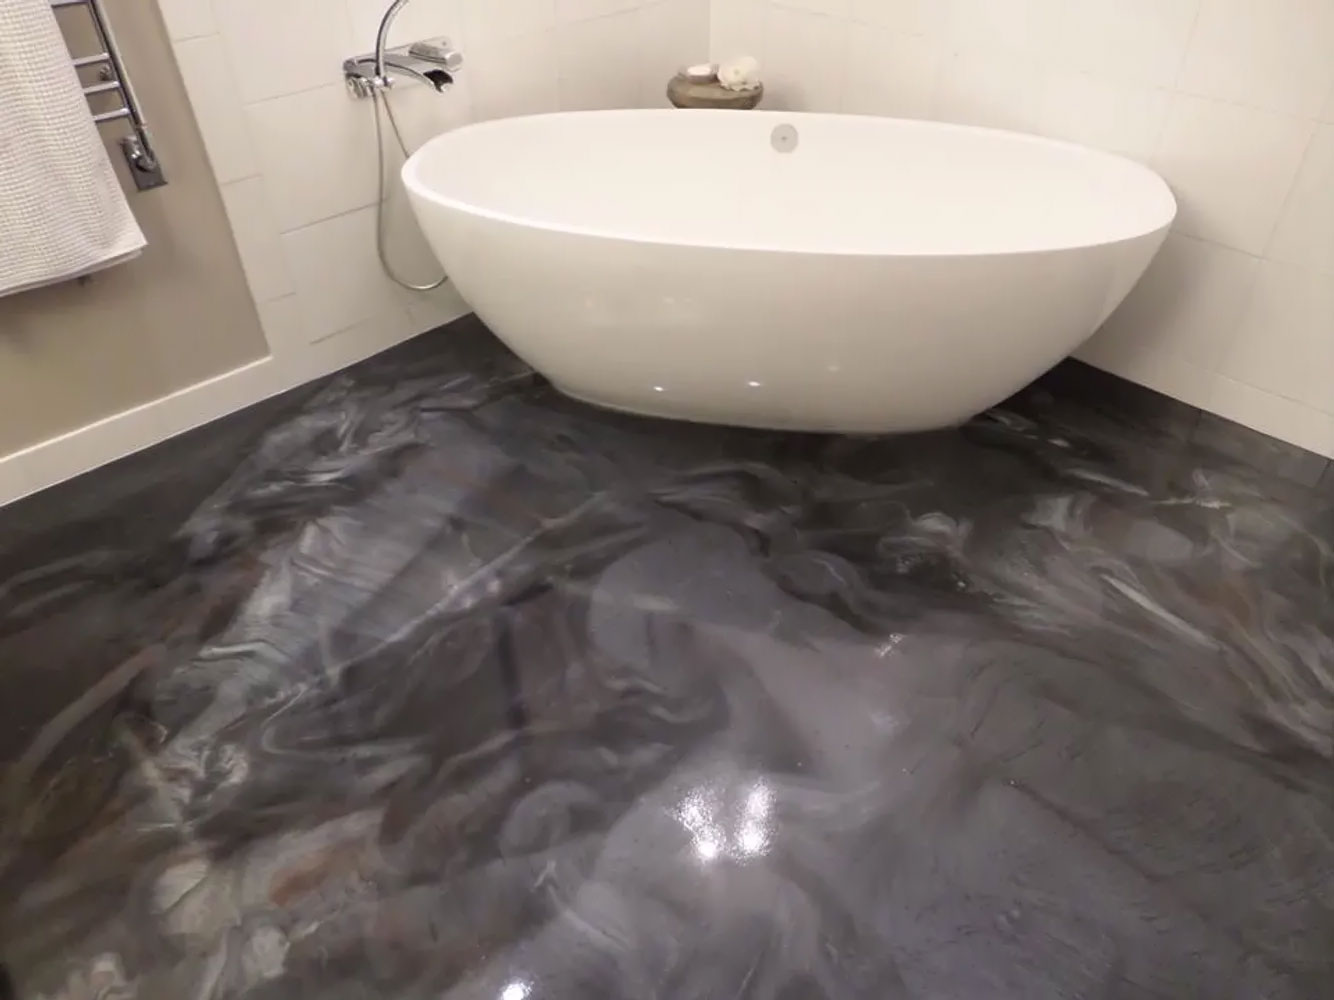 epoxy flooring in bathroom